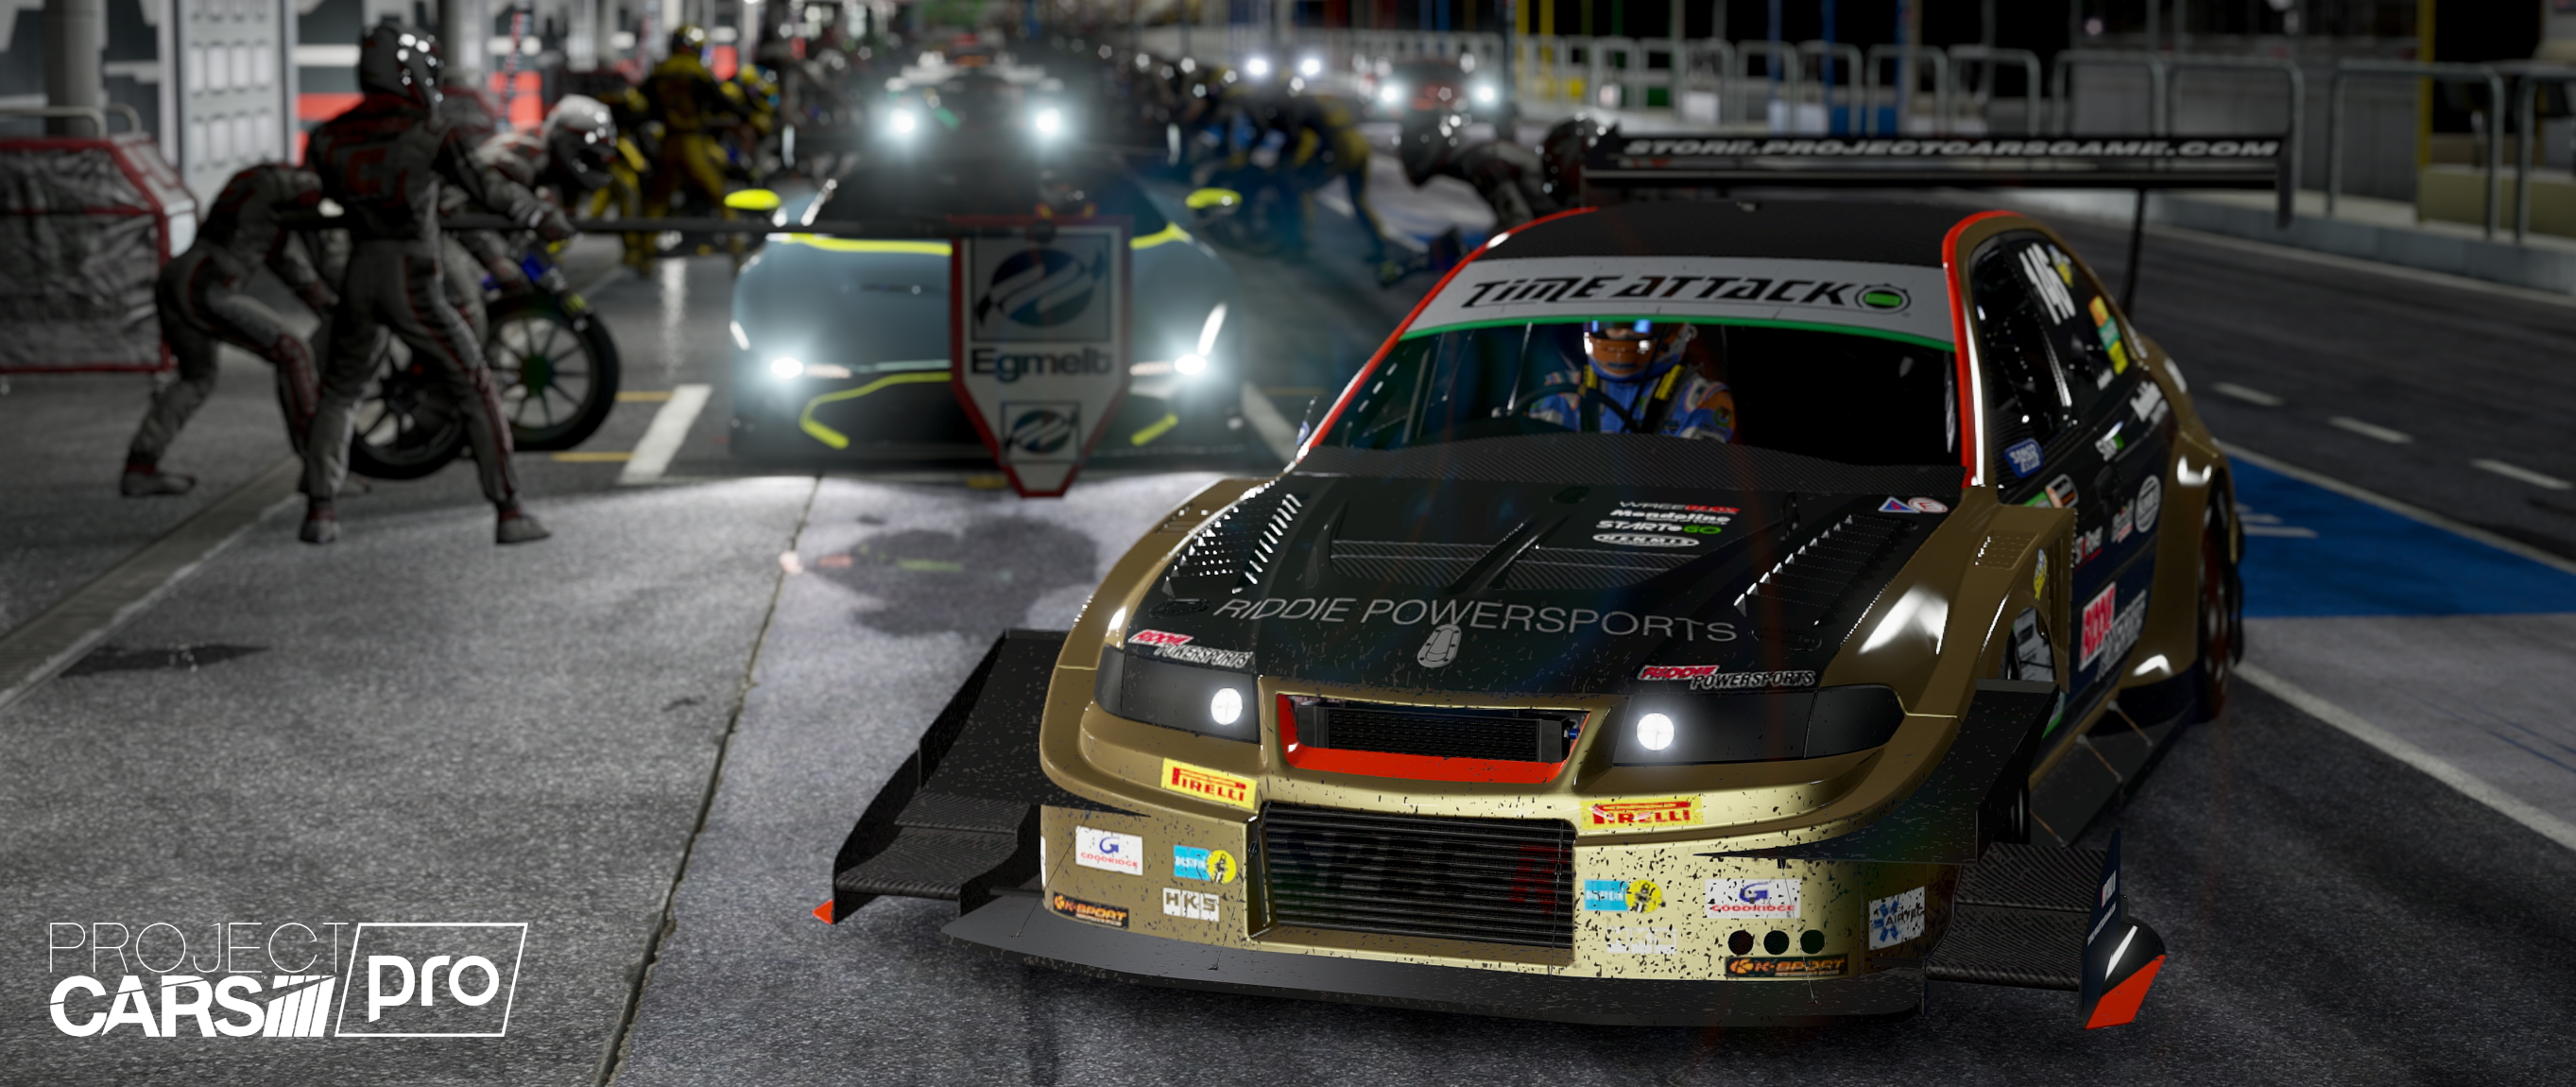 Project Cars Vr >> Projects Cars Pro Races Onto Synthesis Vr Synthesis Vr